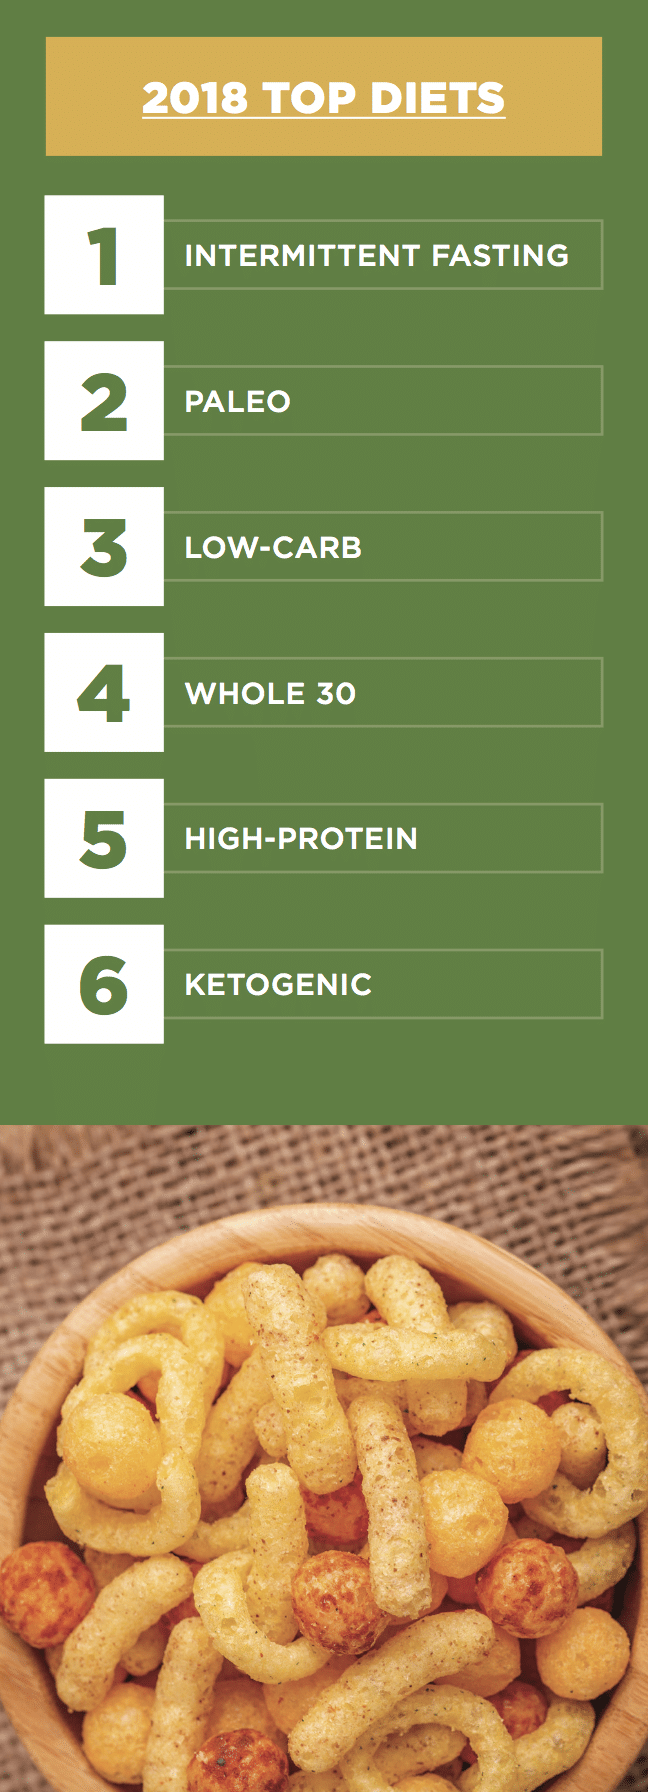 2018 Top Diets Infographic